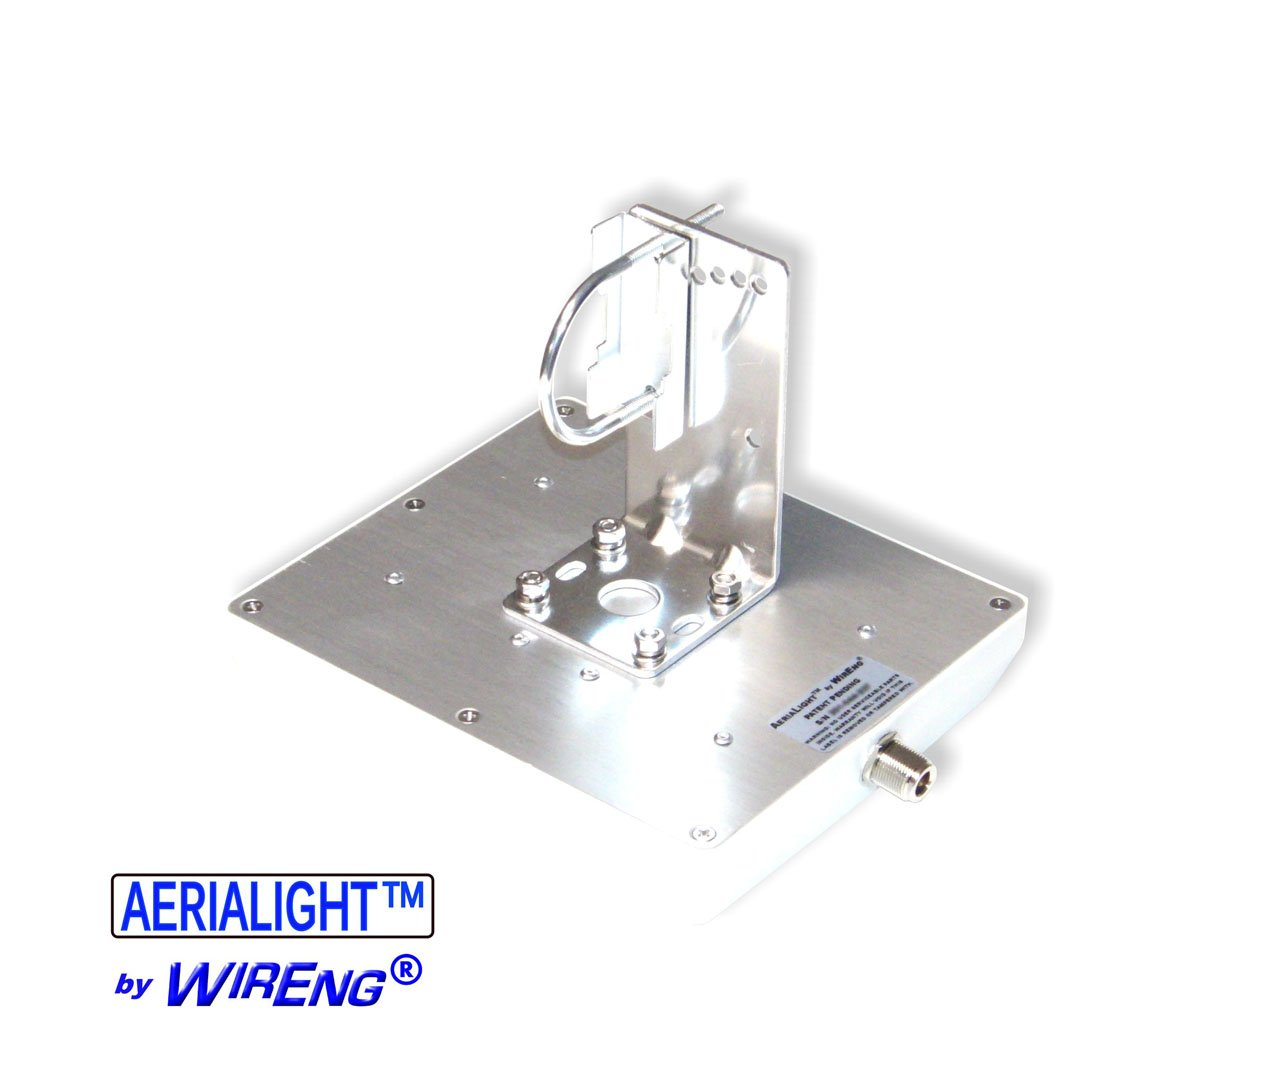 Amazon.com: AeriaLight™ Antenna for Vodafone K3512 Light and Compact: Cell Phones & Accessories